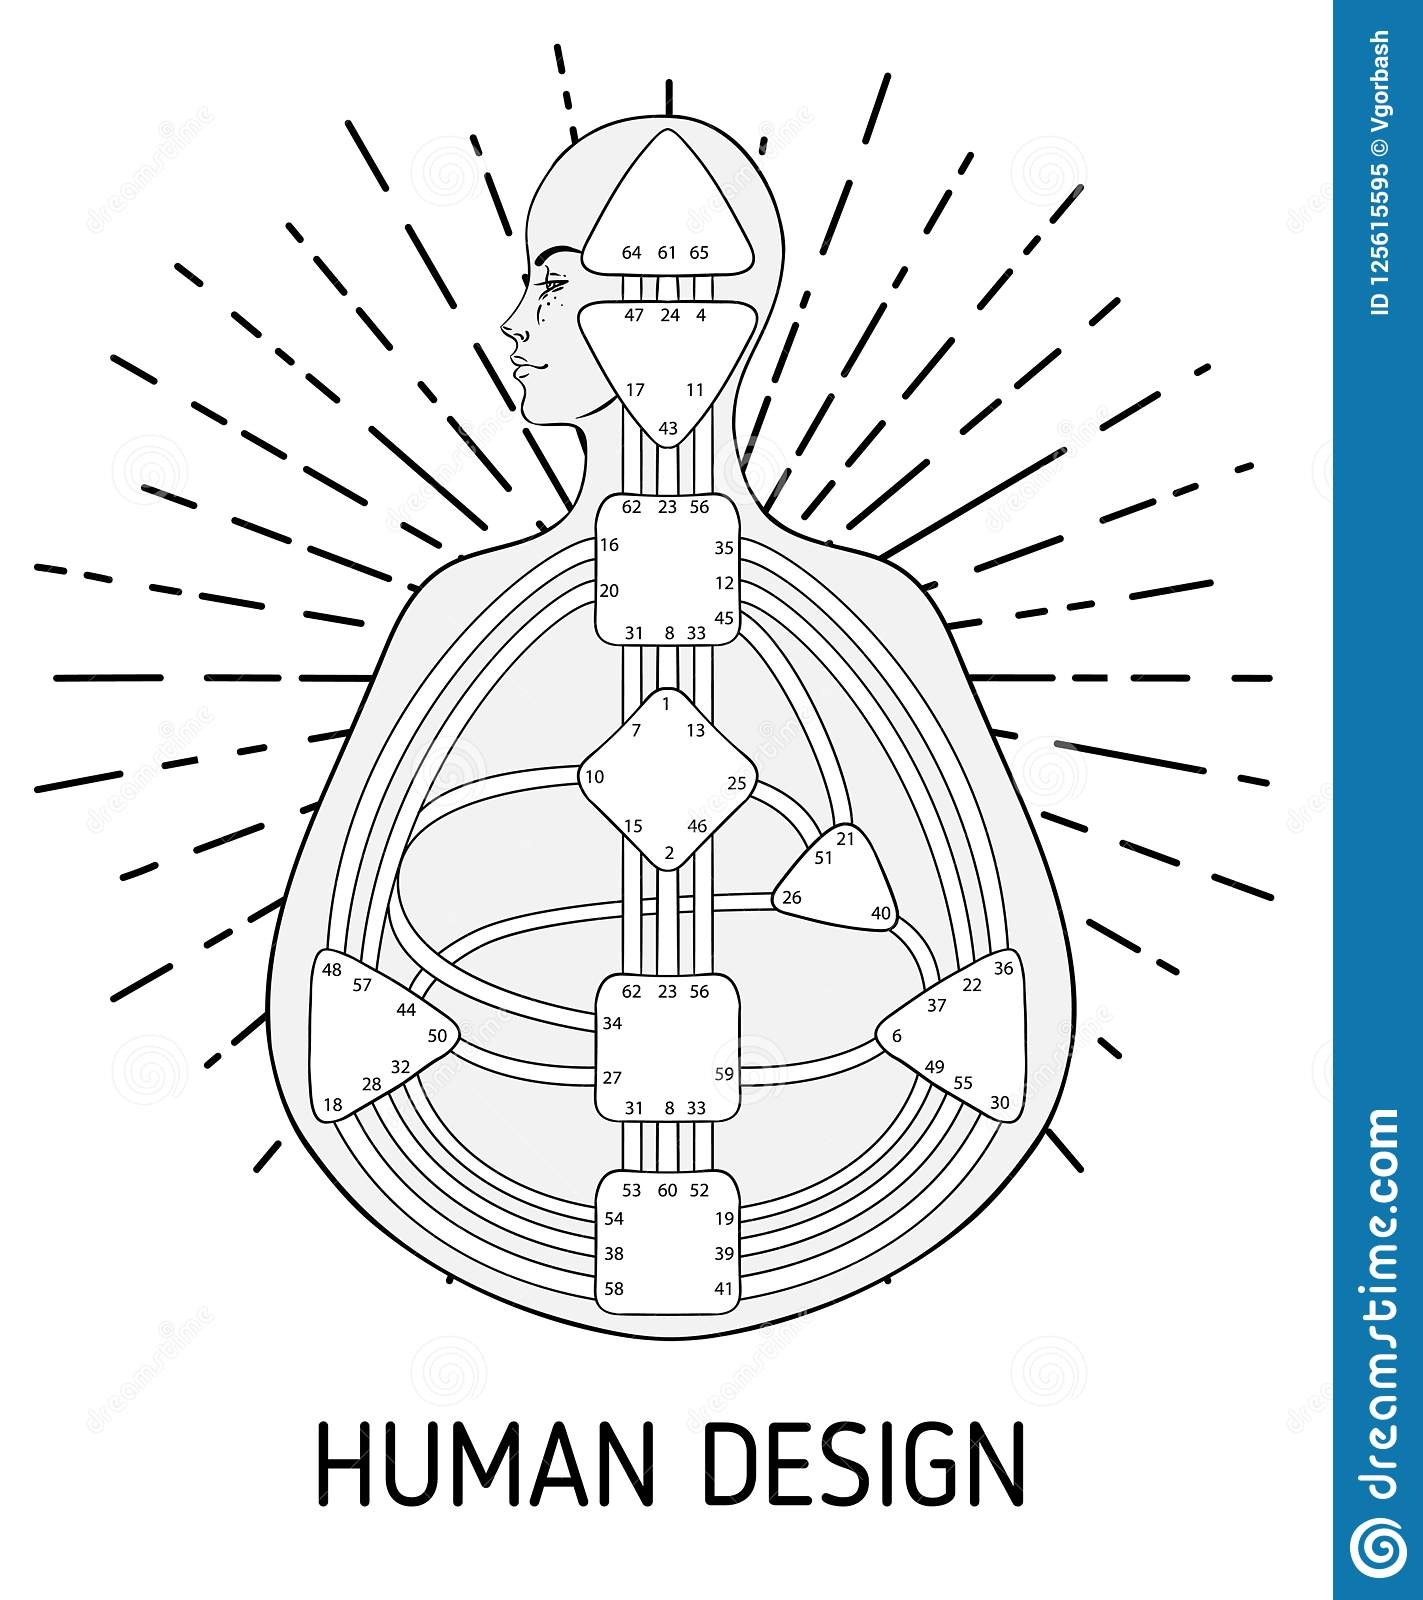 Human Design Bodygraph Chart Design Vector Isolated Illustration Stock Vector Illustration Of Esoteric Energy 125615595